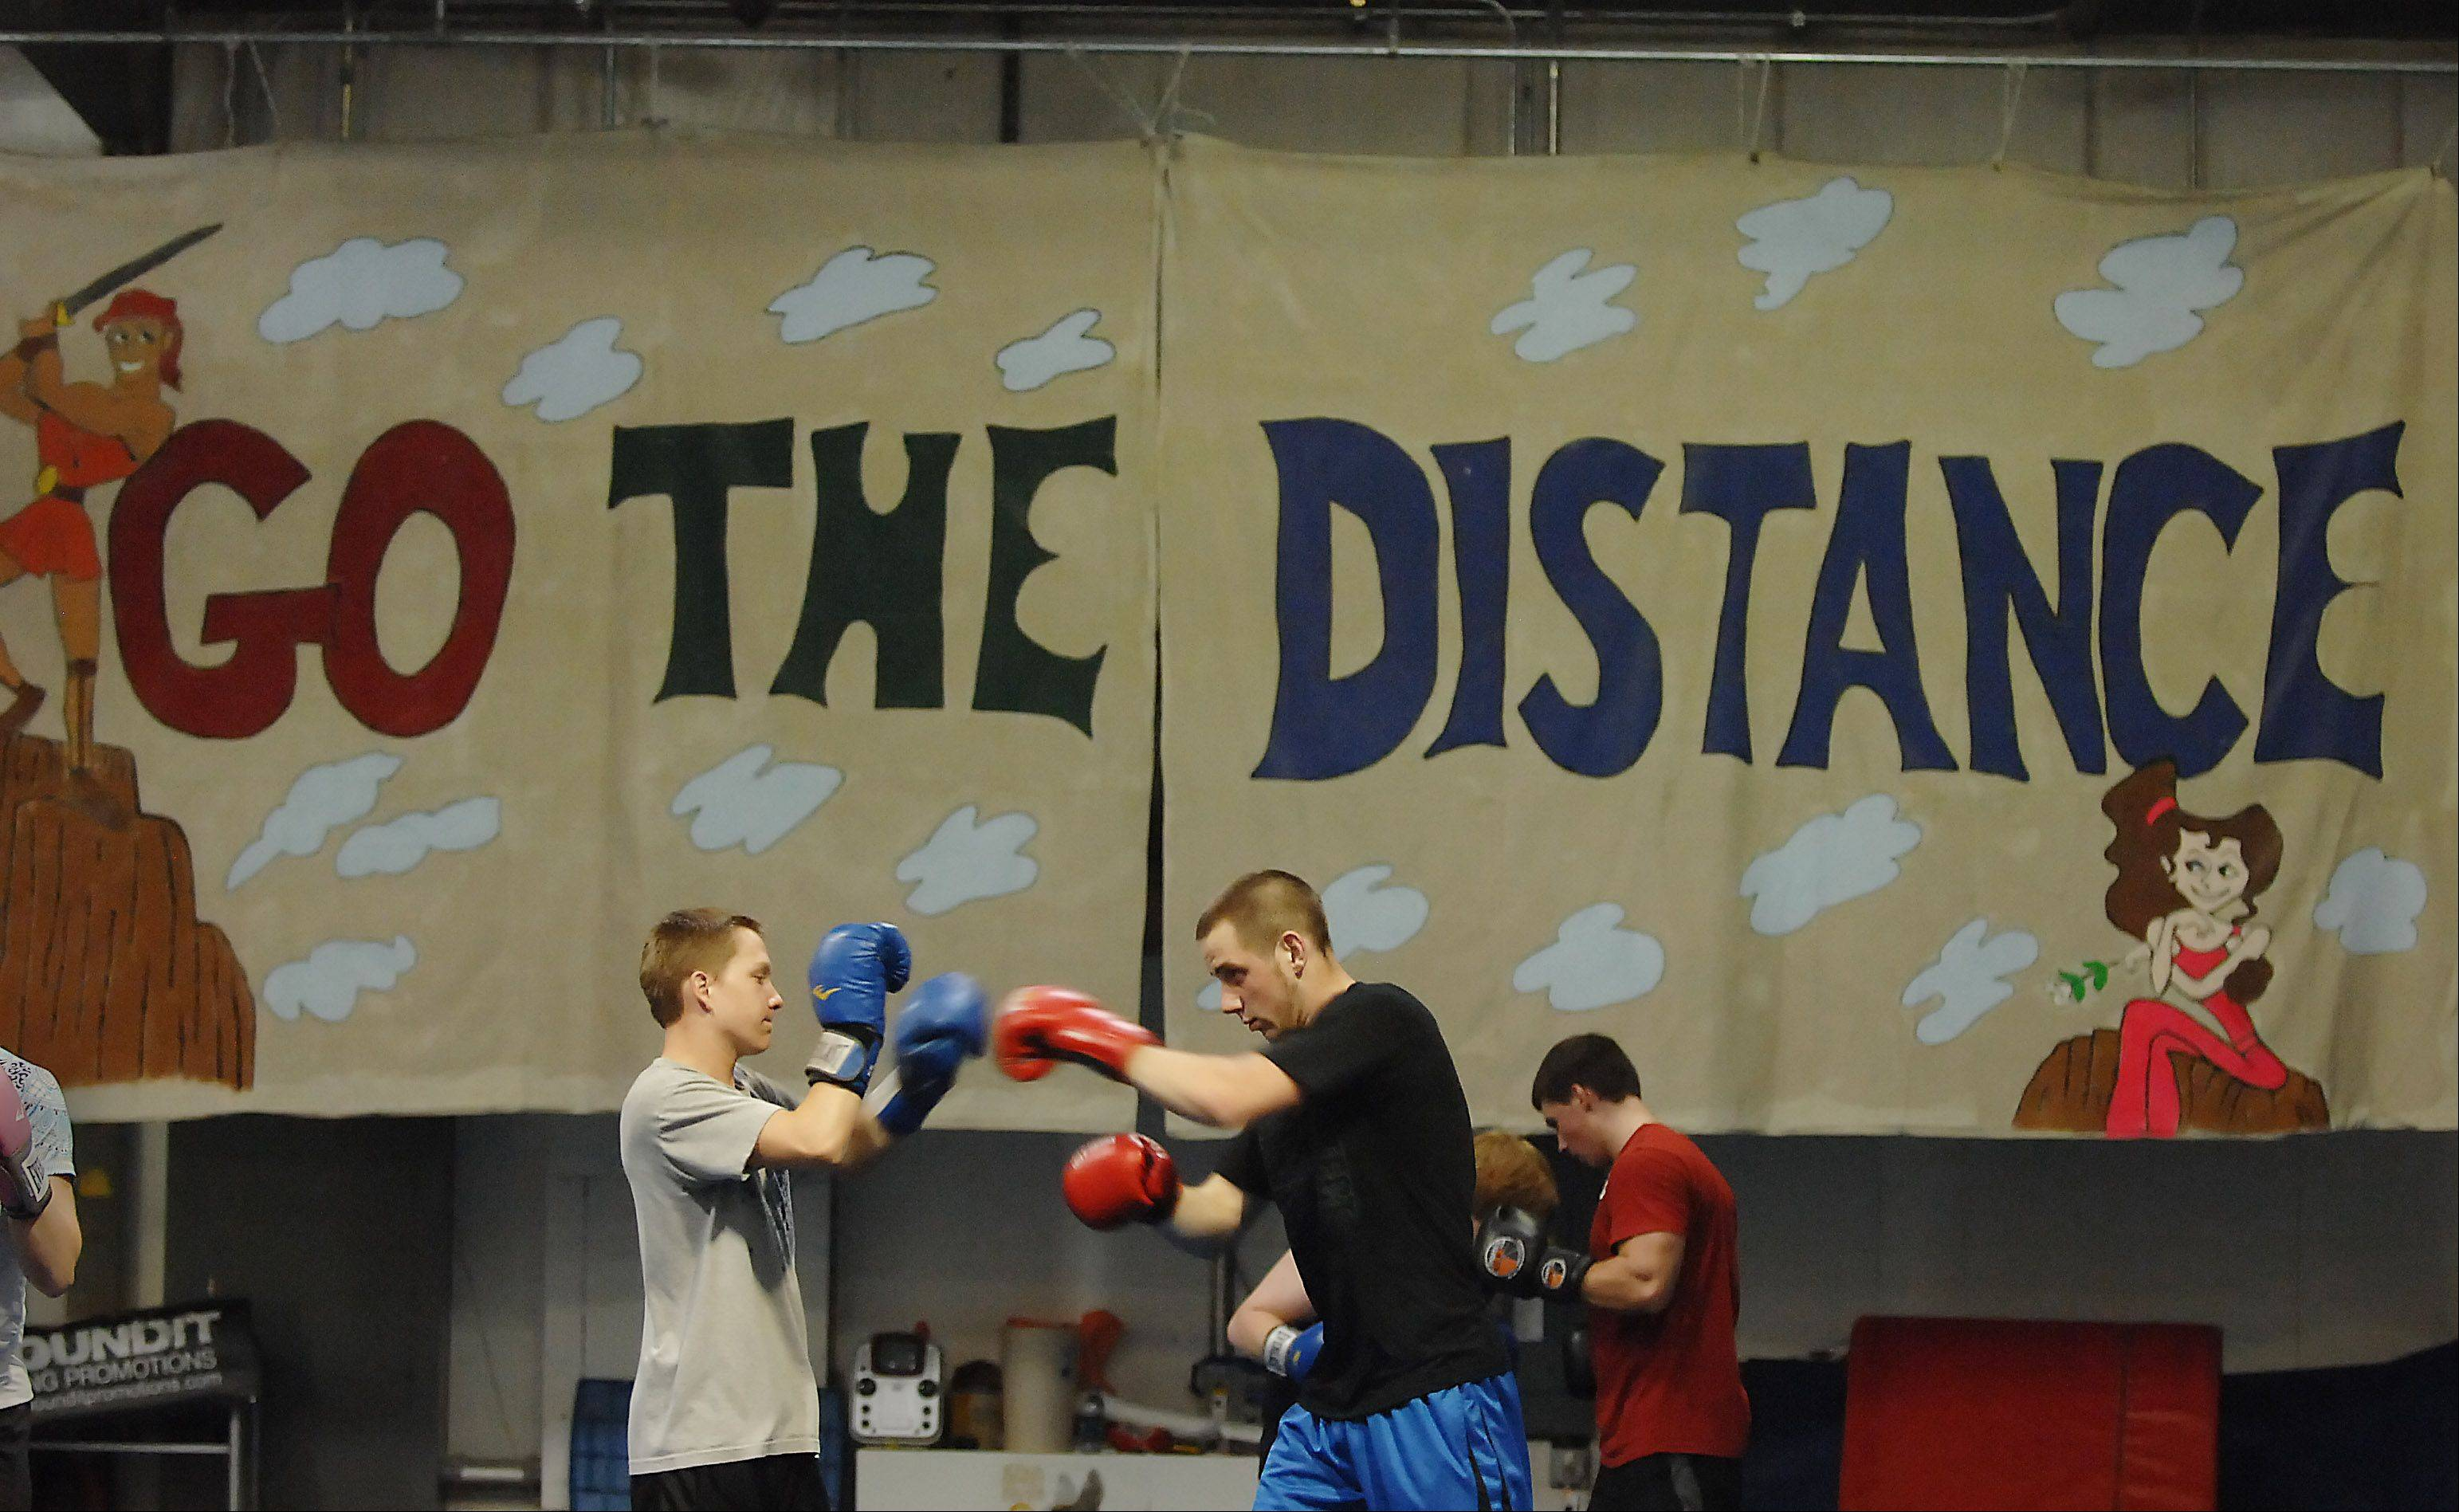 Jimmy Gustafson, left, of Lake in the Hills and Tanner Frese of Cary practice combination punches. Gustafson is boxing in Round 1, an exhibition set for Saturday, April 28, in Lakemoor.